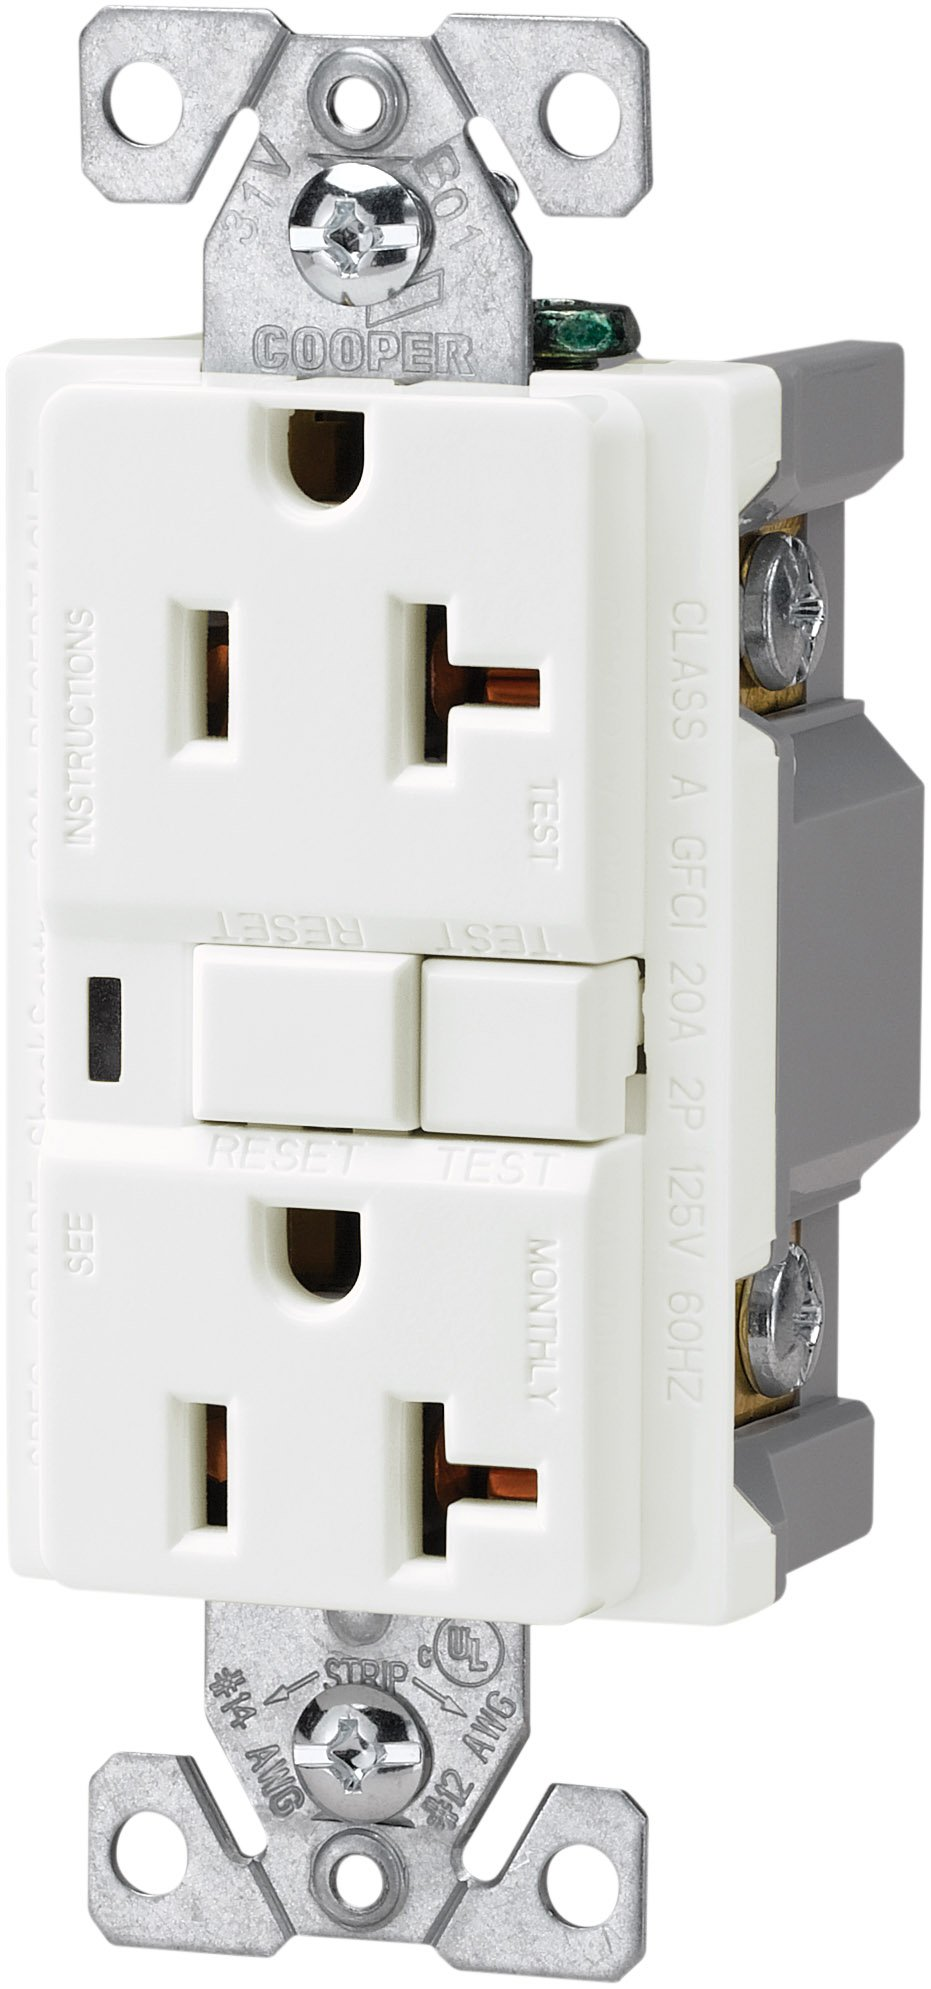 The Eaton VGF20W 20-Amp 2-Pole 3-Wire 125-Volt Duplex Ground Fault Circuit Interrupter, White